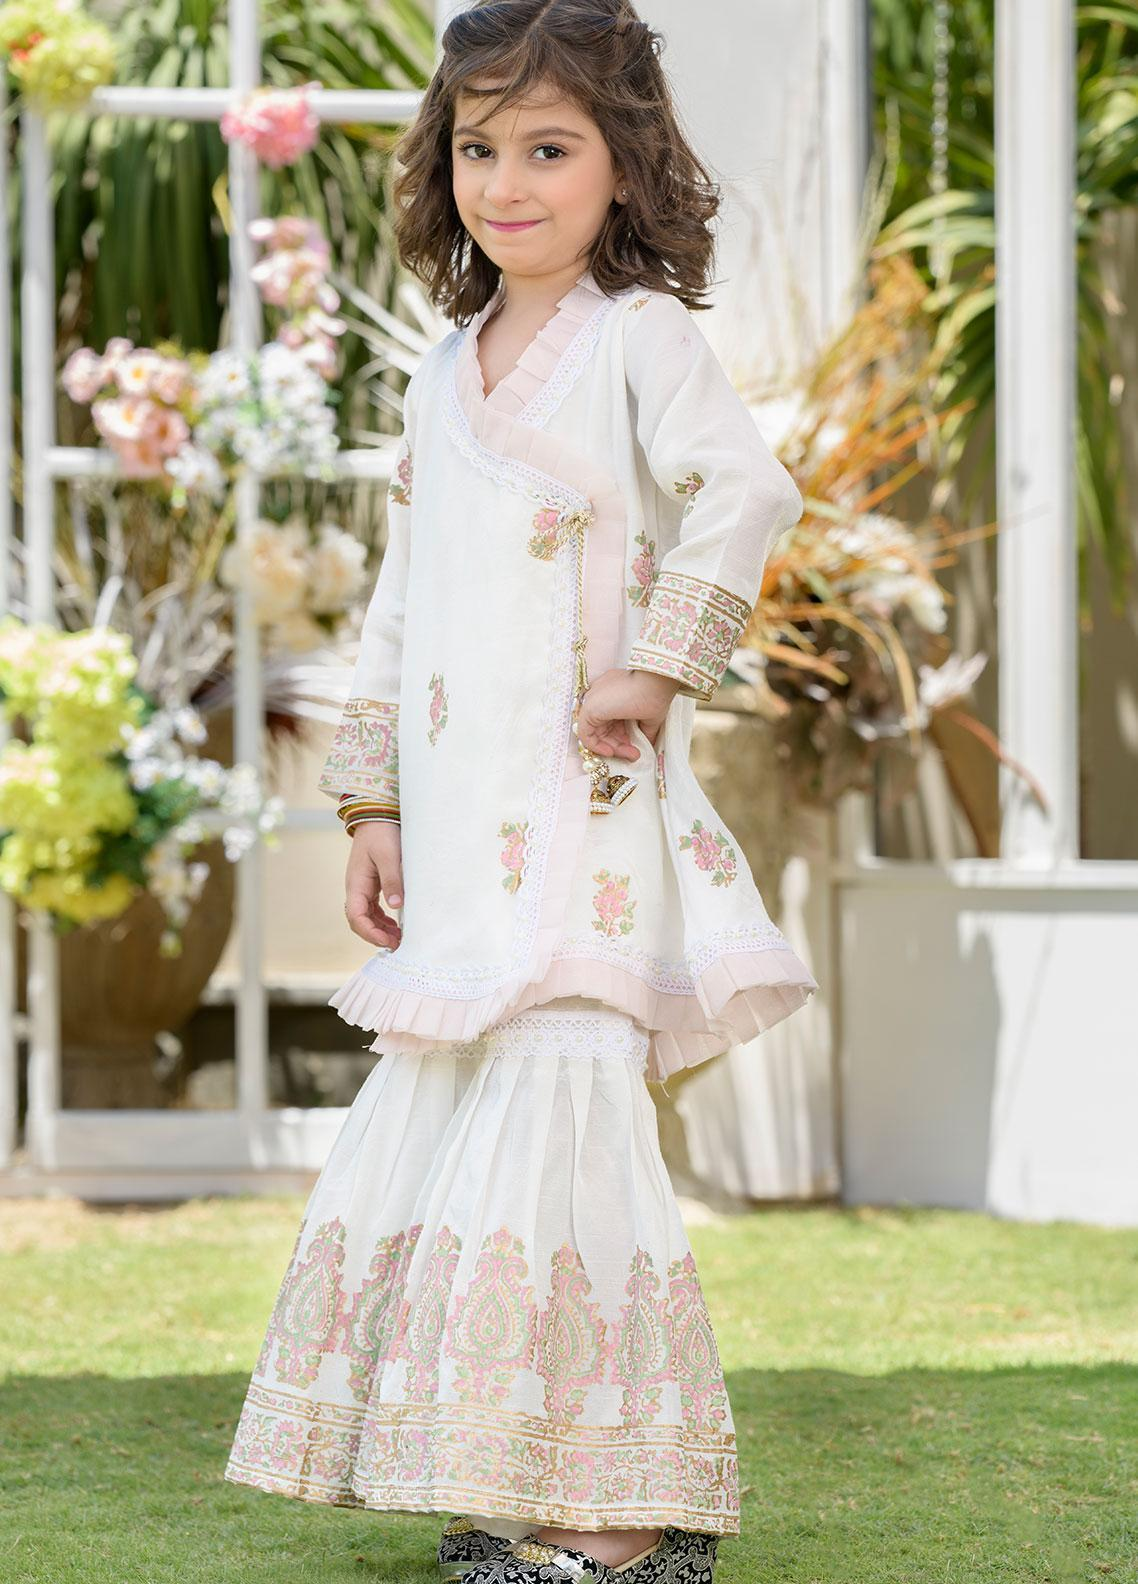 Chic Ophicial Raw Silk Formal Girls 2 Piece Suit - CH22 White Block Print